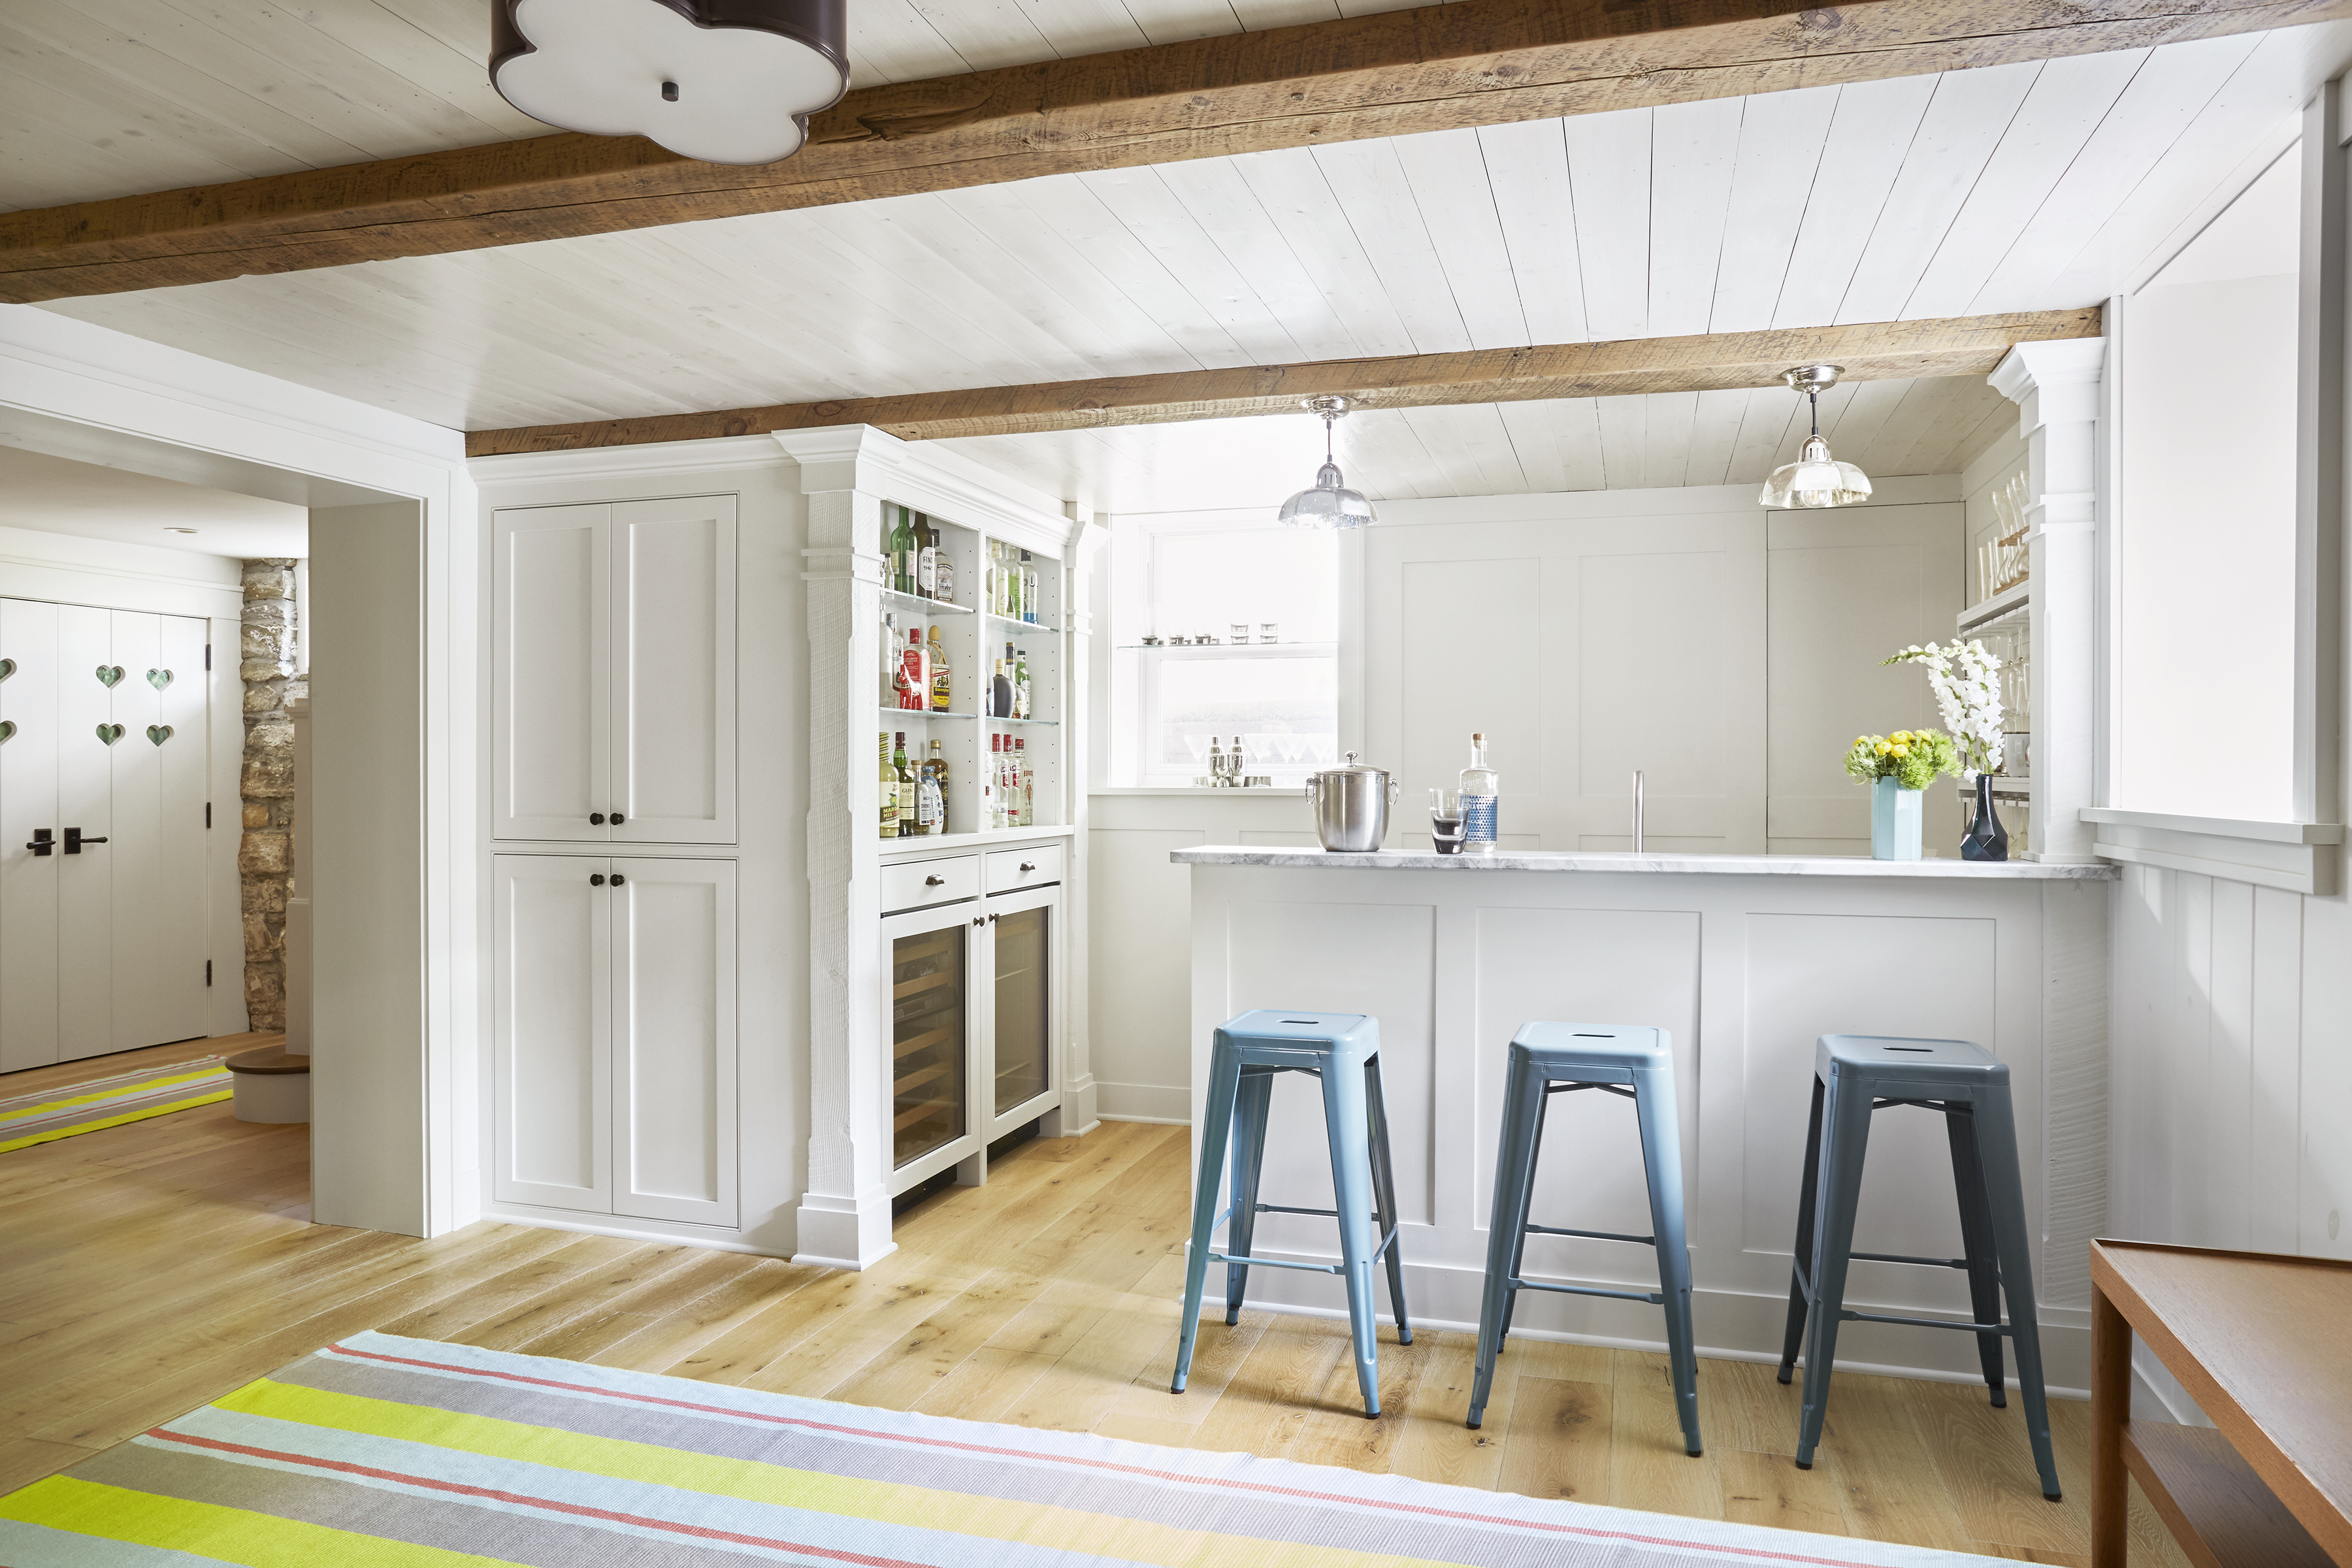 A basement kitchen with a breakfast bar and a painted wood plank ceiling.